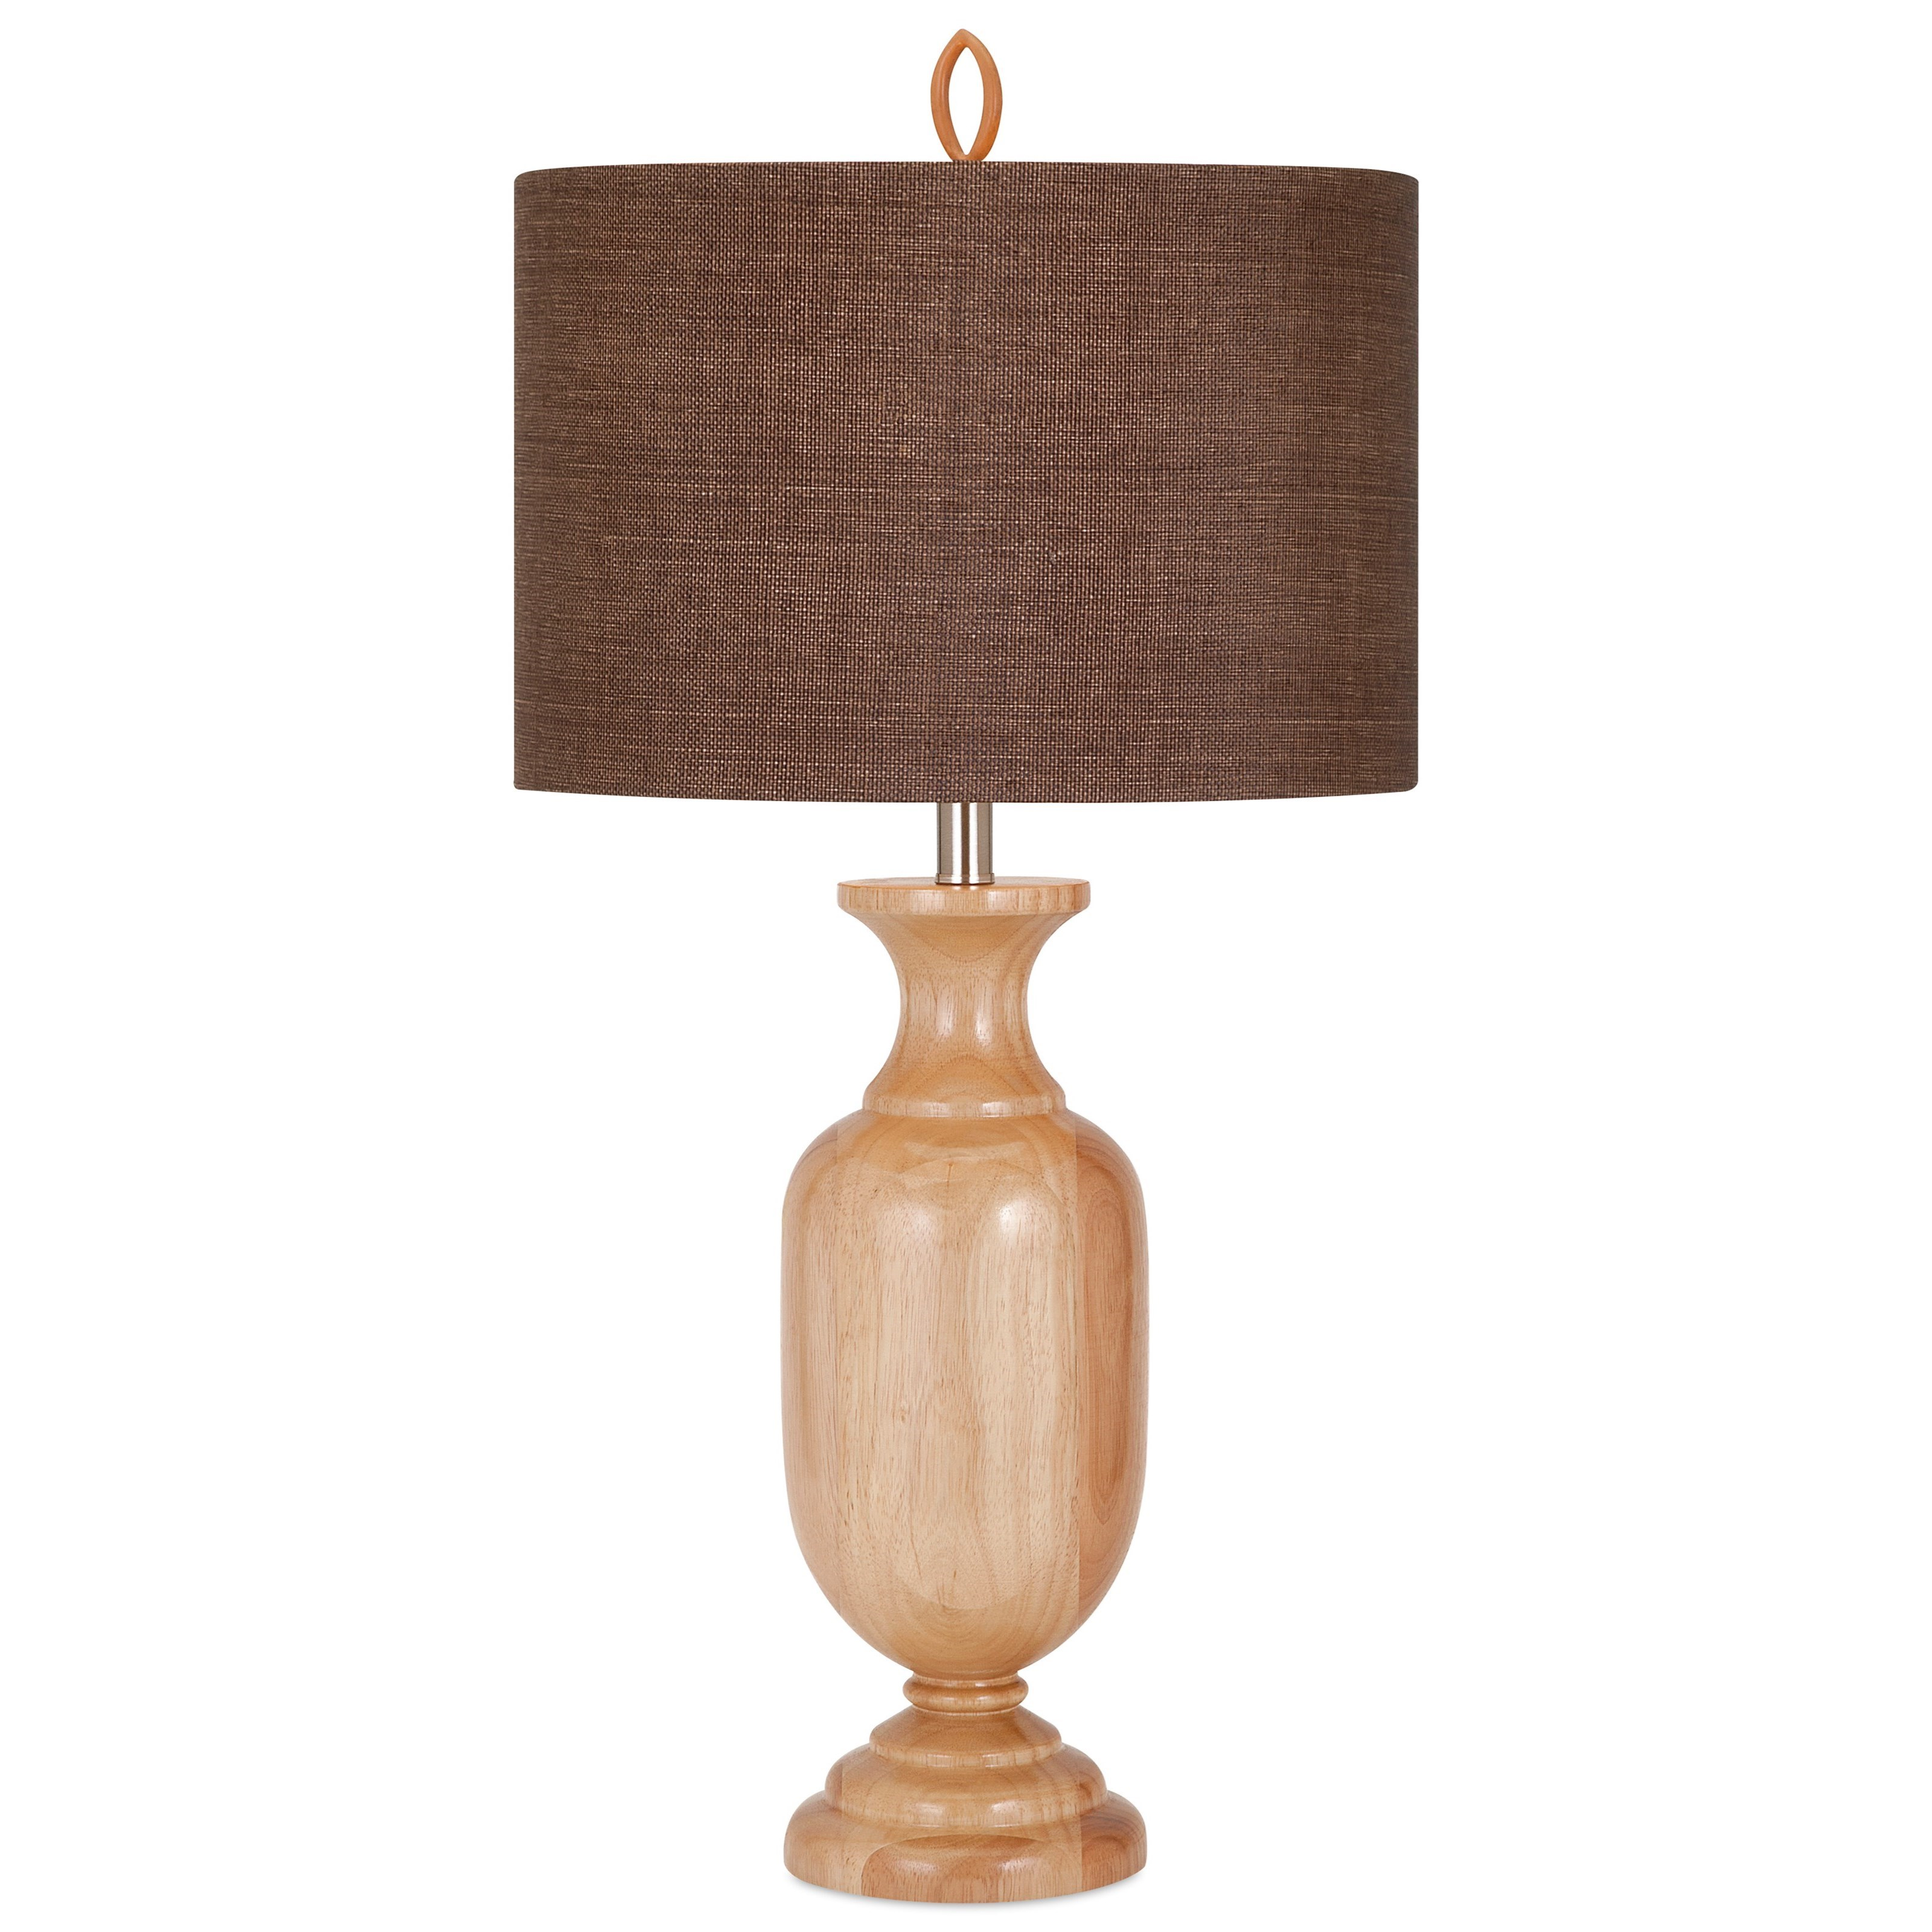 Becky Fletcher Tatum Wood Lamp by IMAX Worldwide Home at Alison Craig Home Furnishings